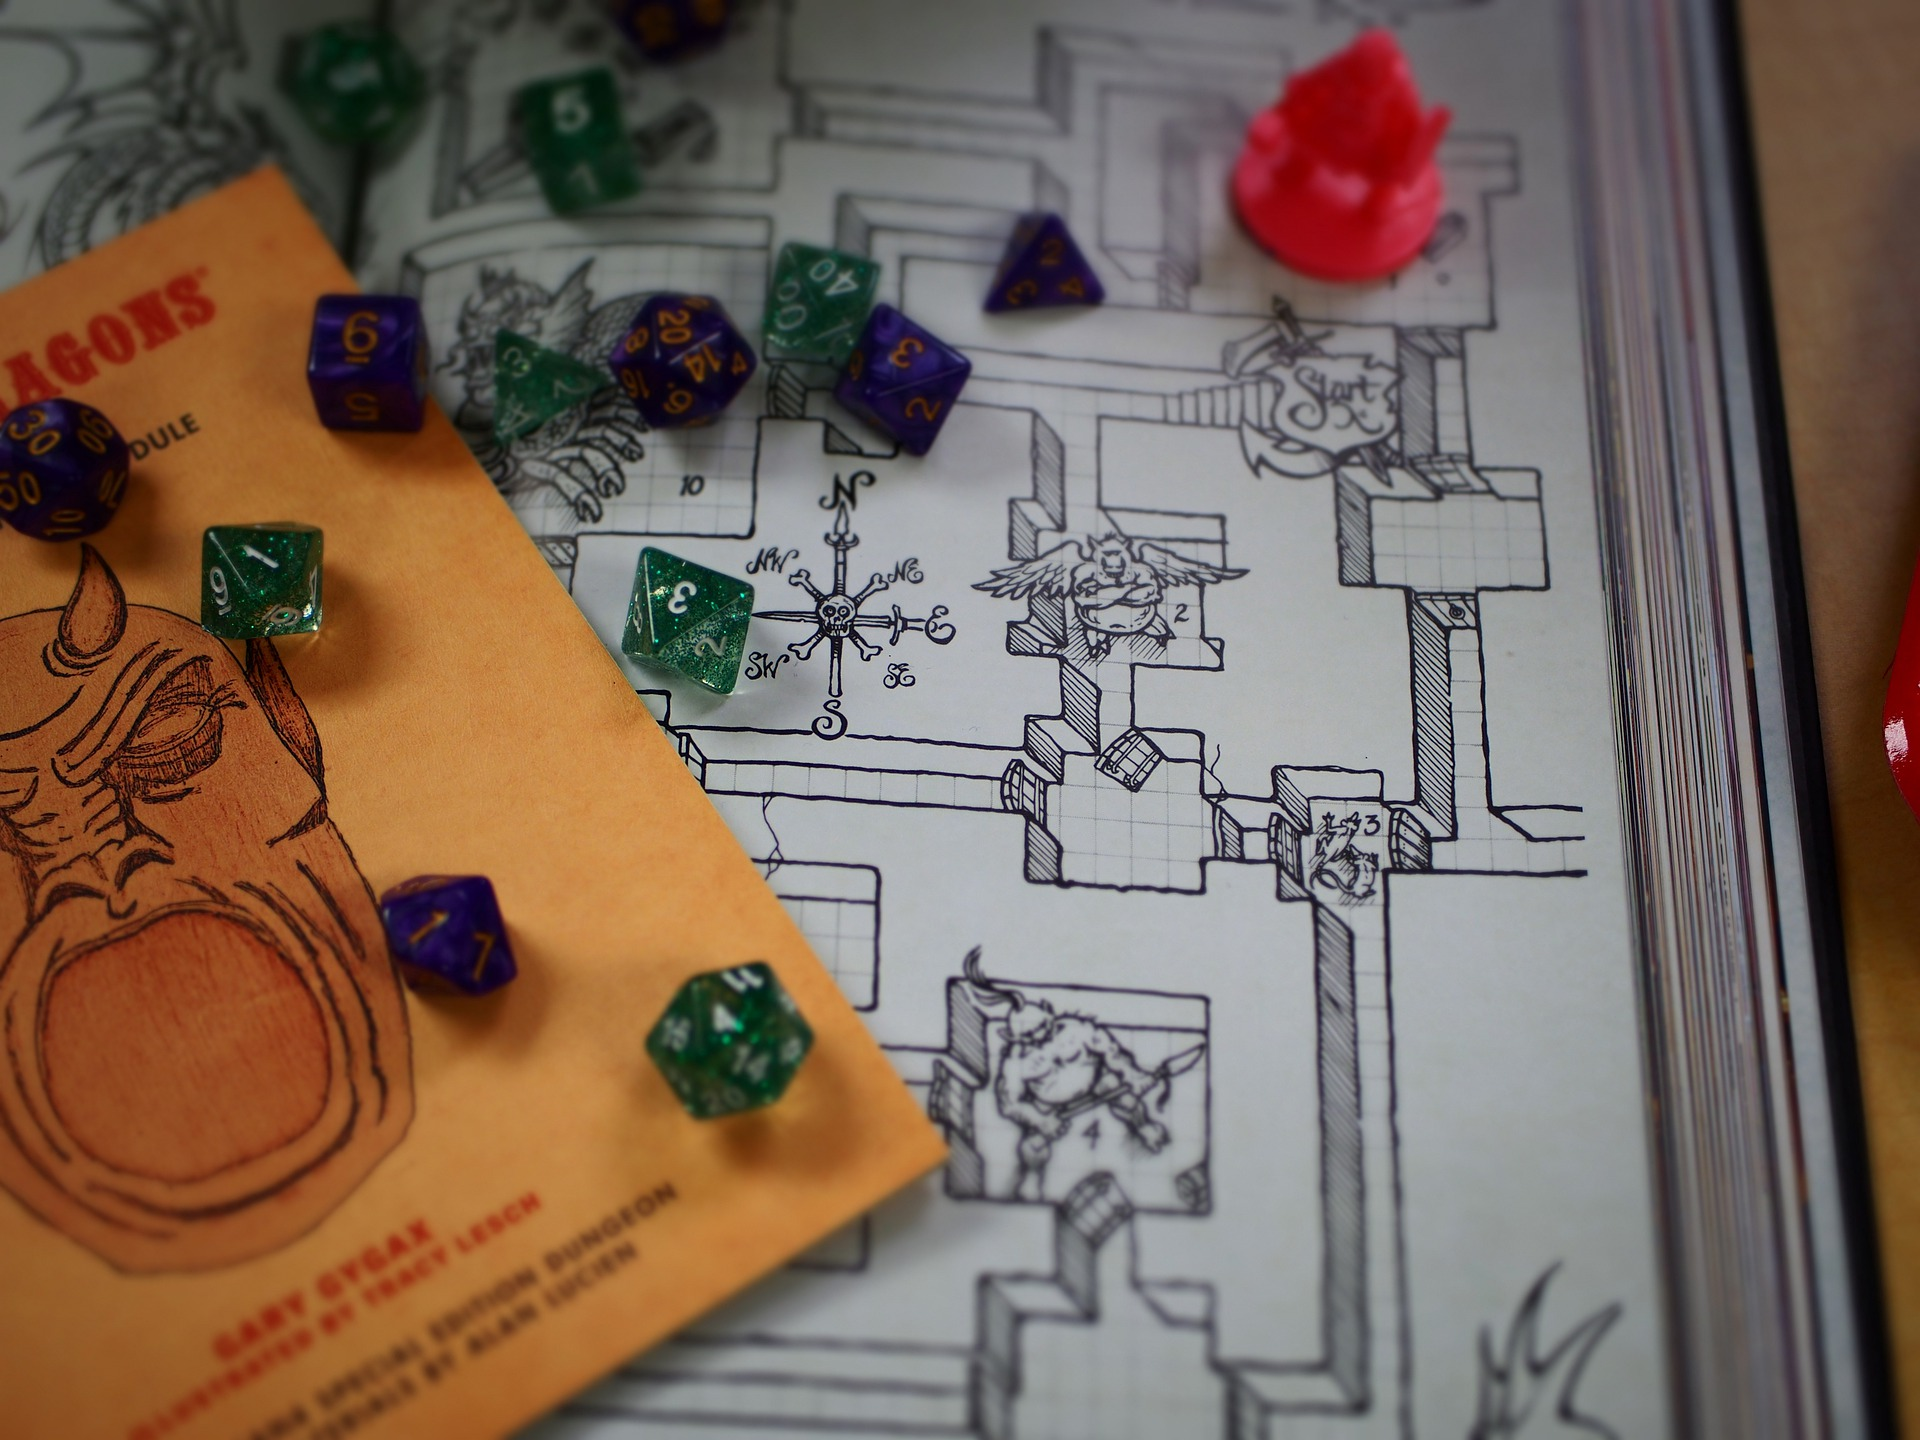 An image of dice and a map for an article on D&D